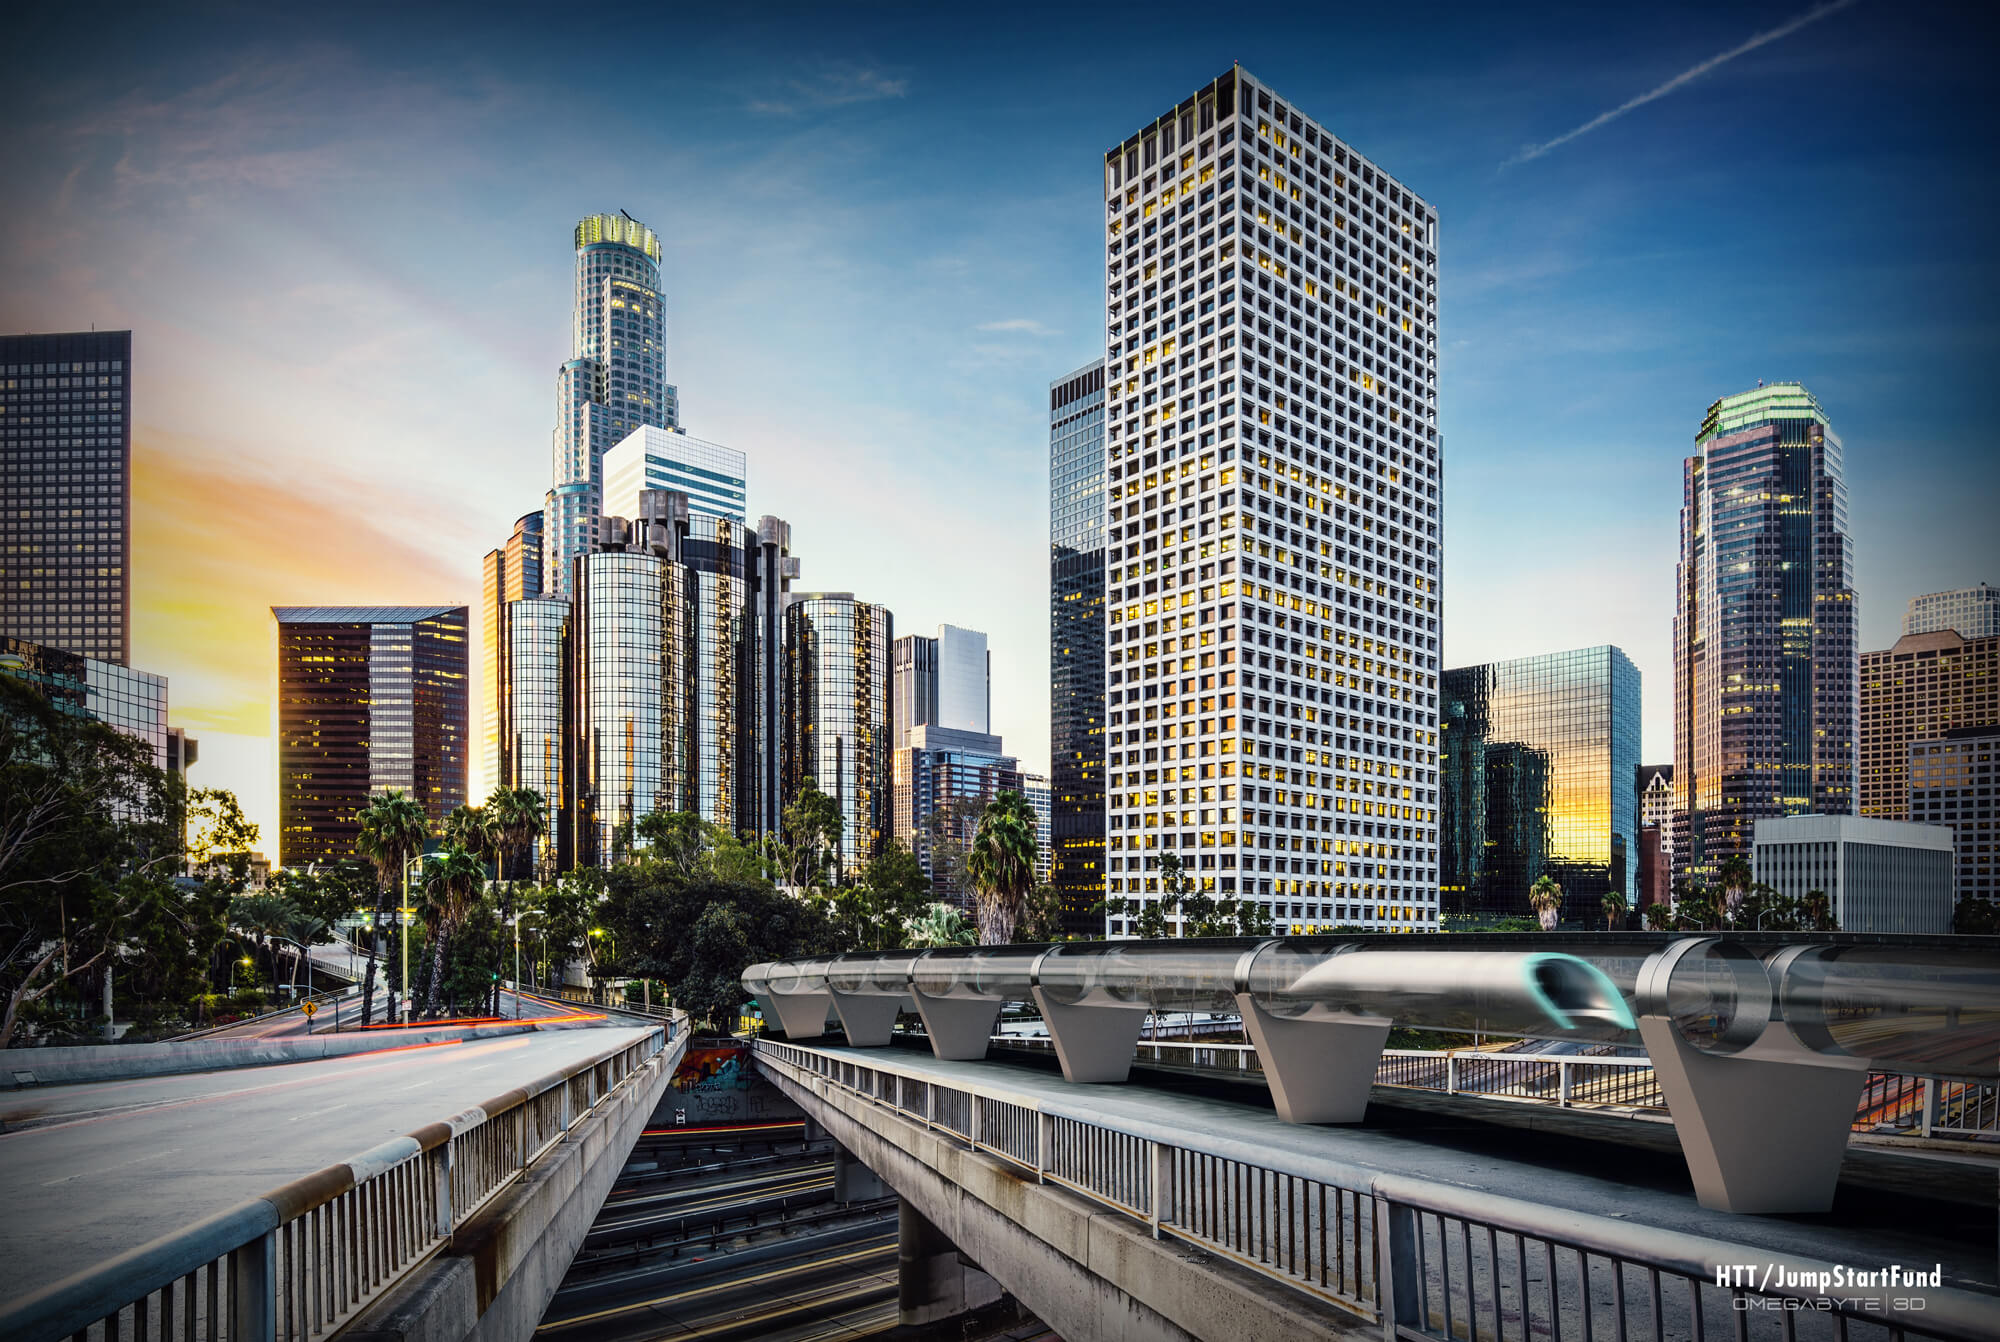 HyperLoop_Concept_LosAngeles_02_transparent_copyright_c_2014_omegabyte3d-1